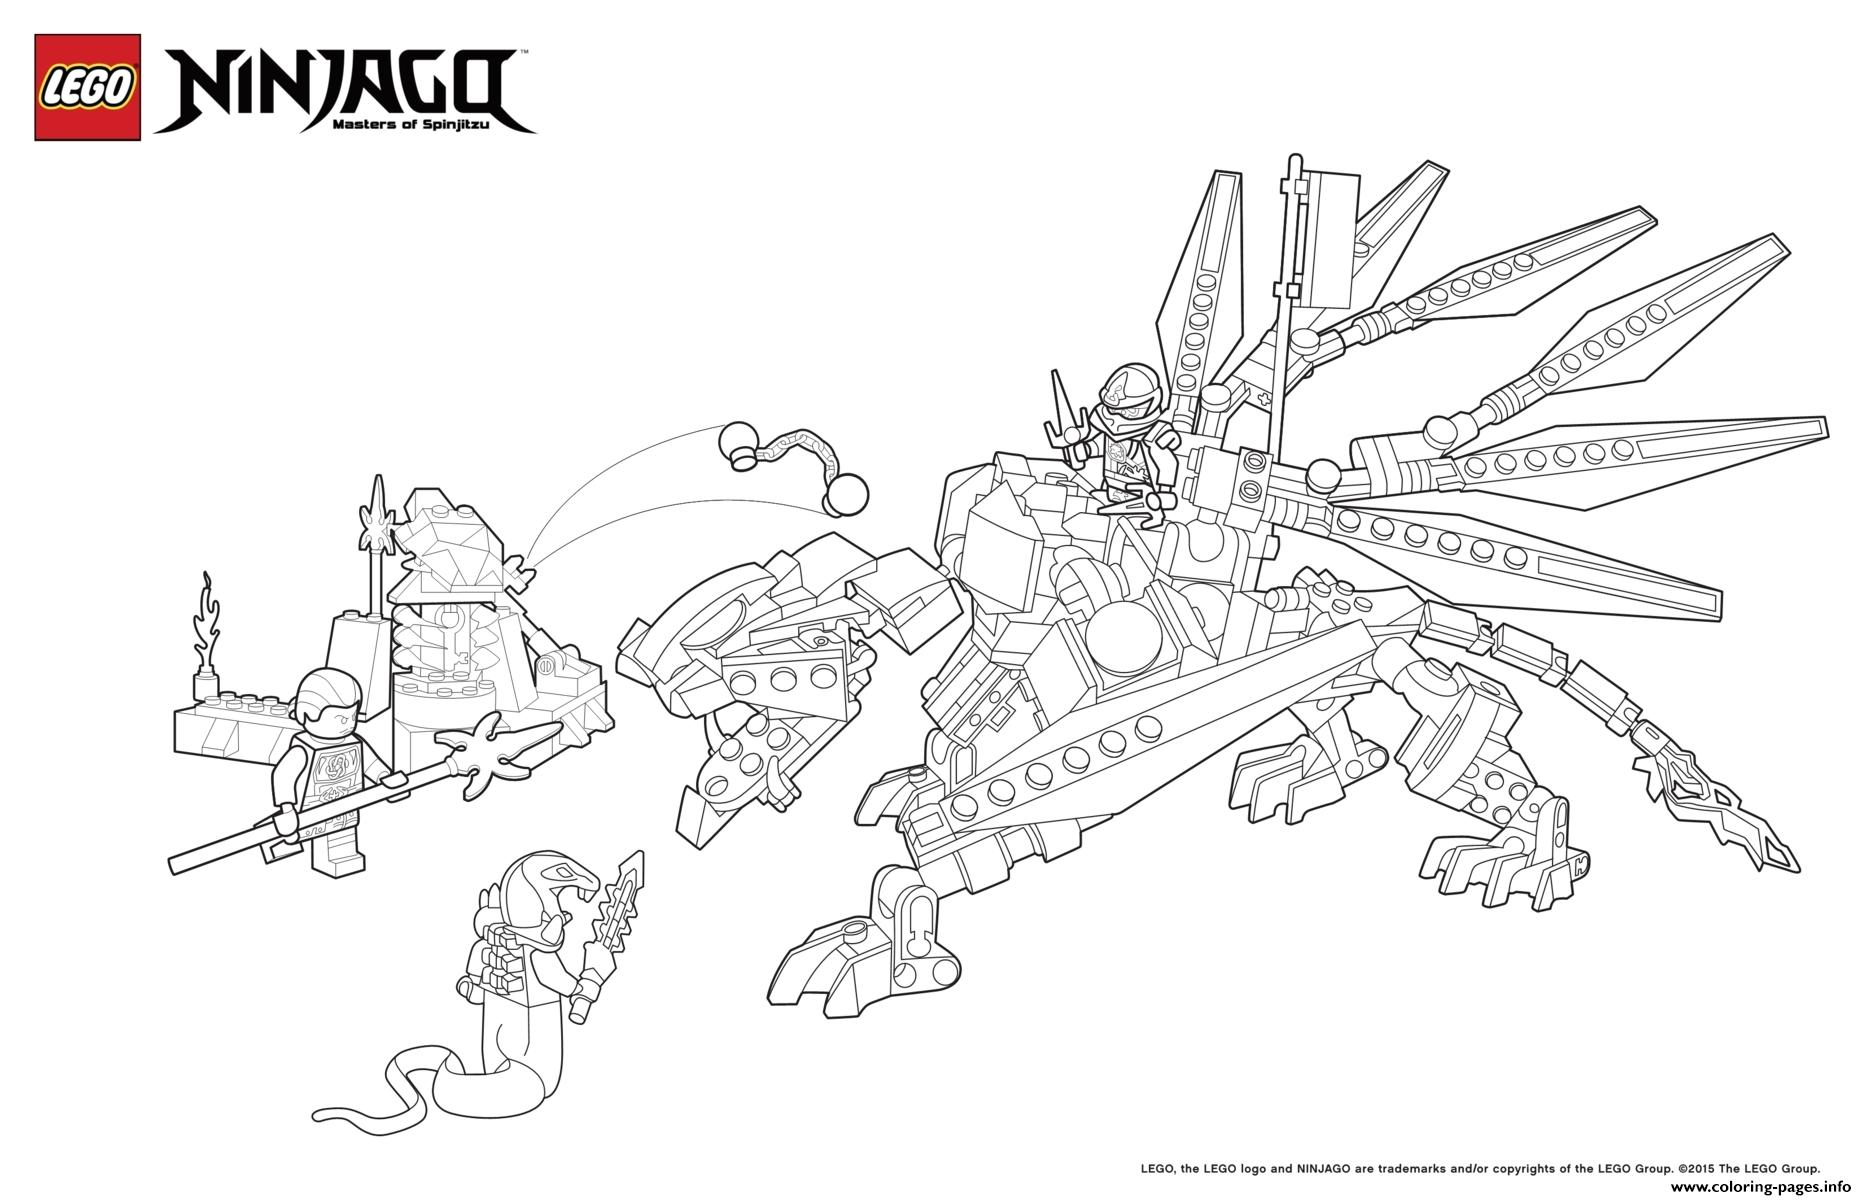 Coloring pages ninjago - Dragon Ninja Attack Enemy Lego Colouring Print Dragon Ninja Attack Enemy Lego Coloring Pages